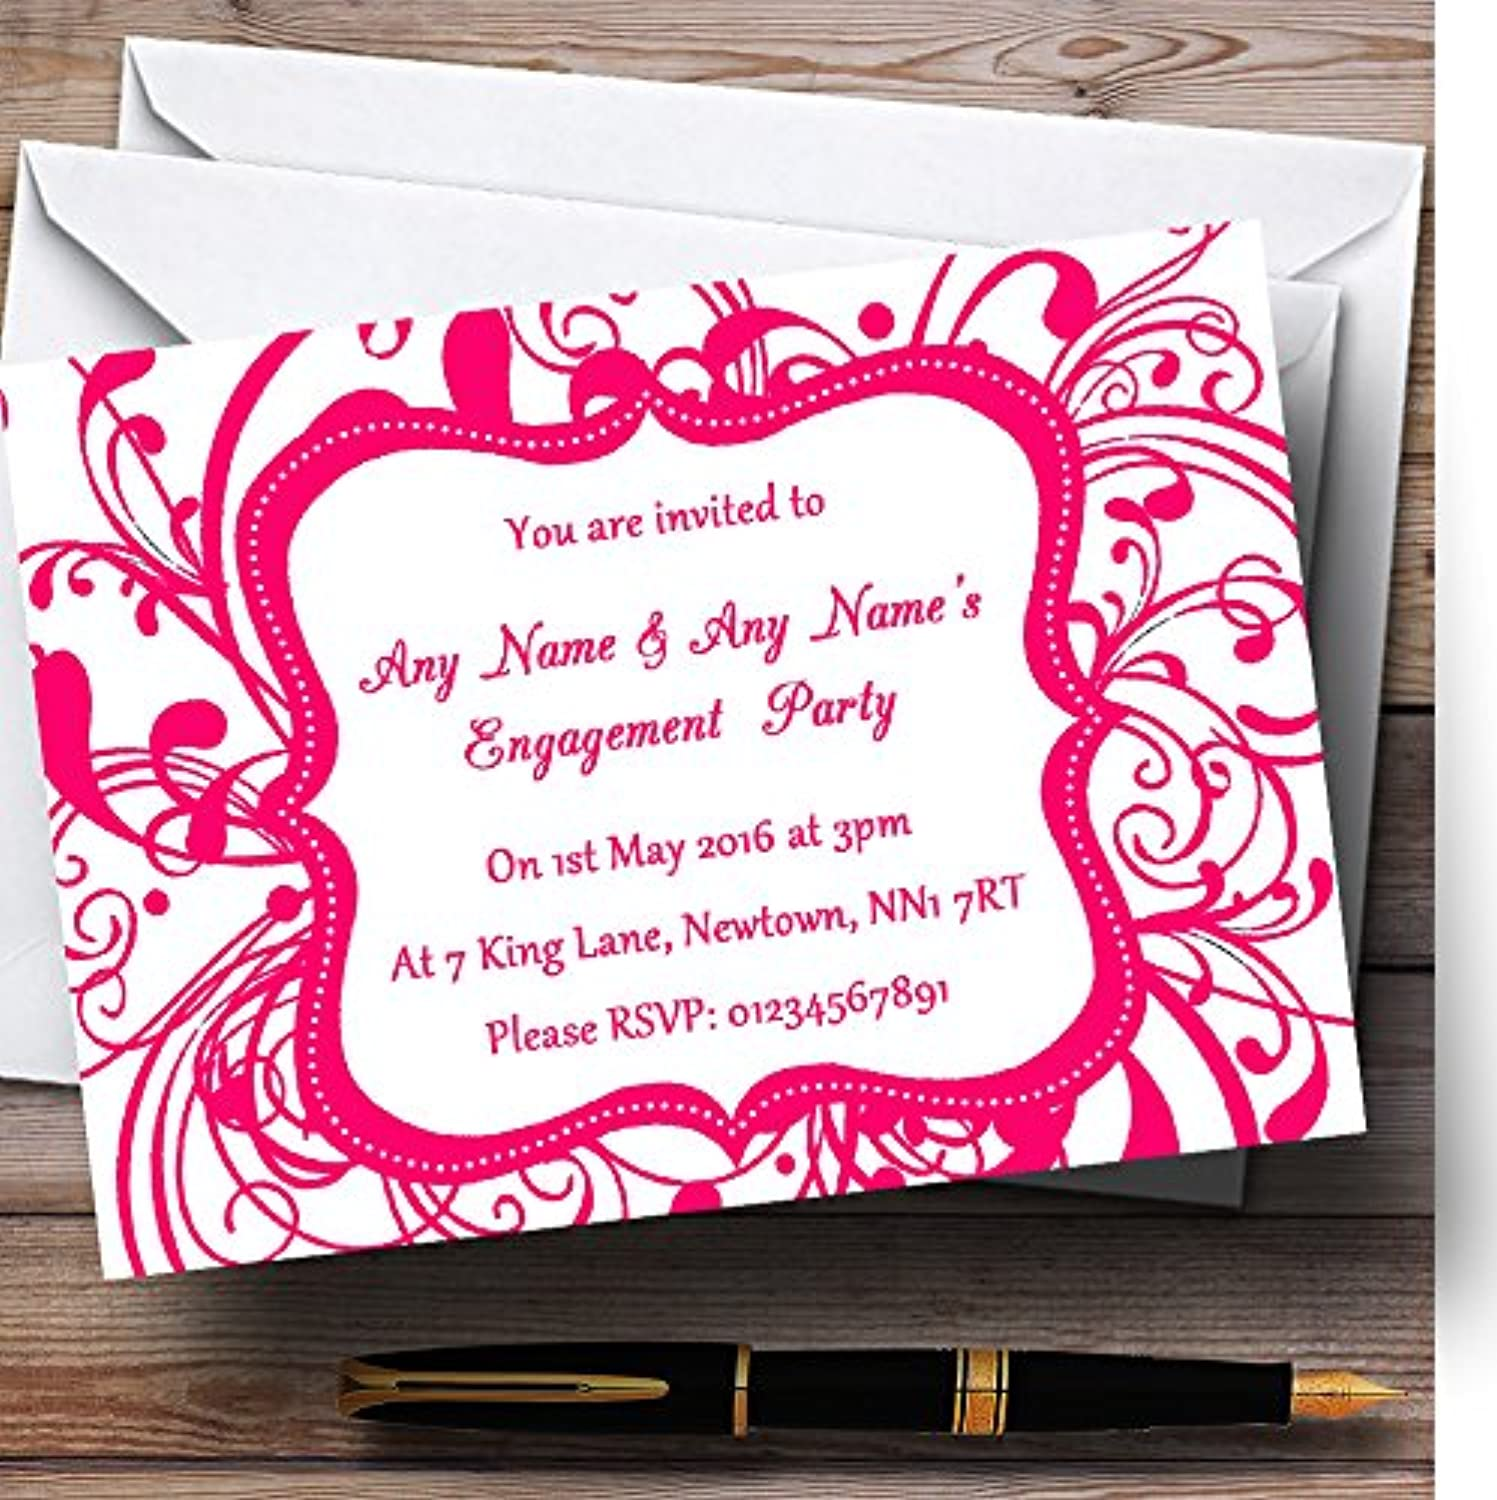 White & Pink Swirl Deco Personalised Engagement Party Invitations   Invites & Envelopes